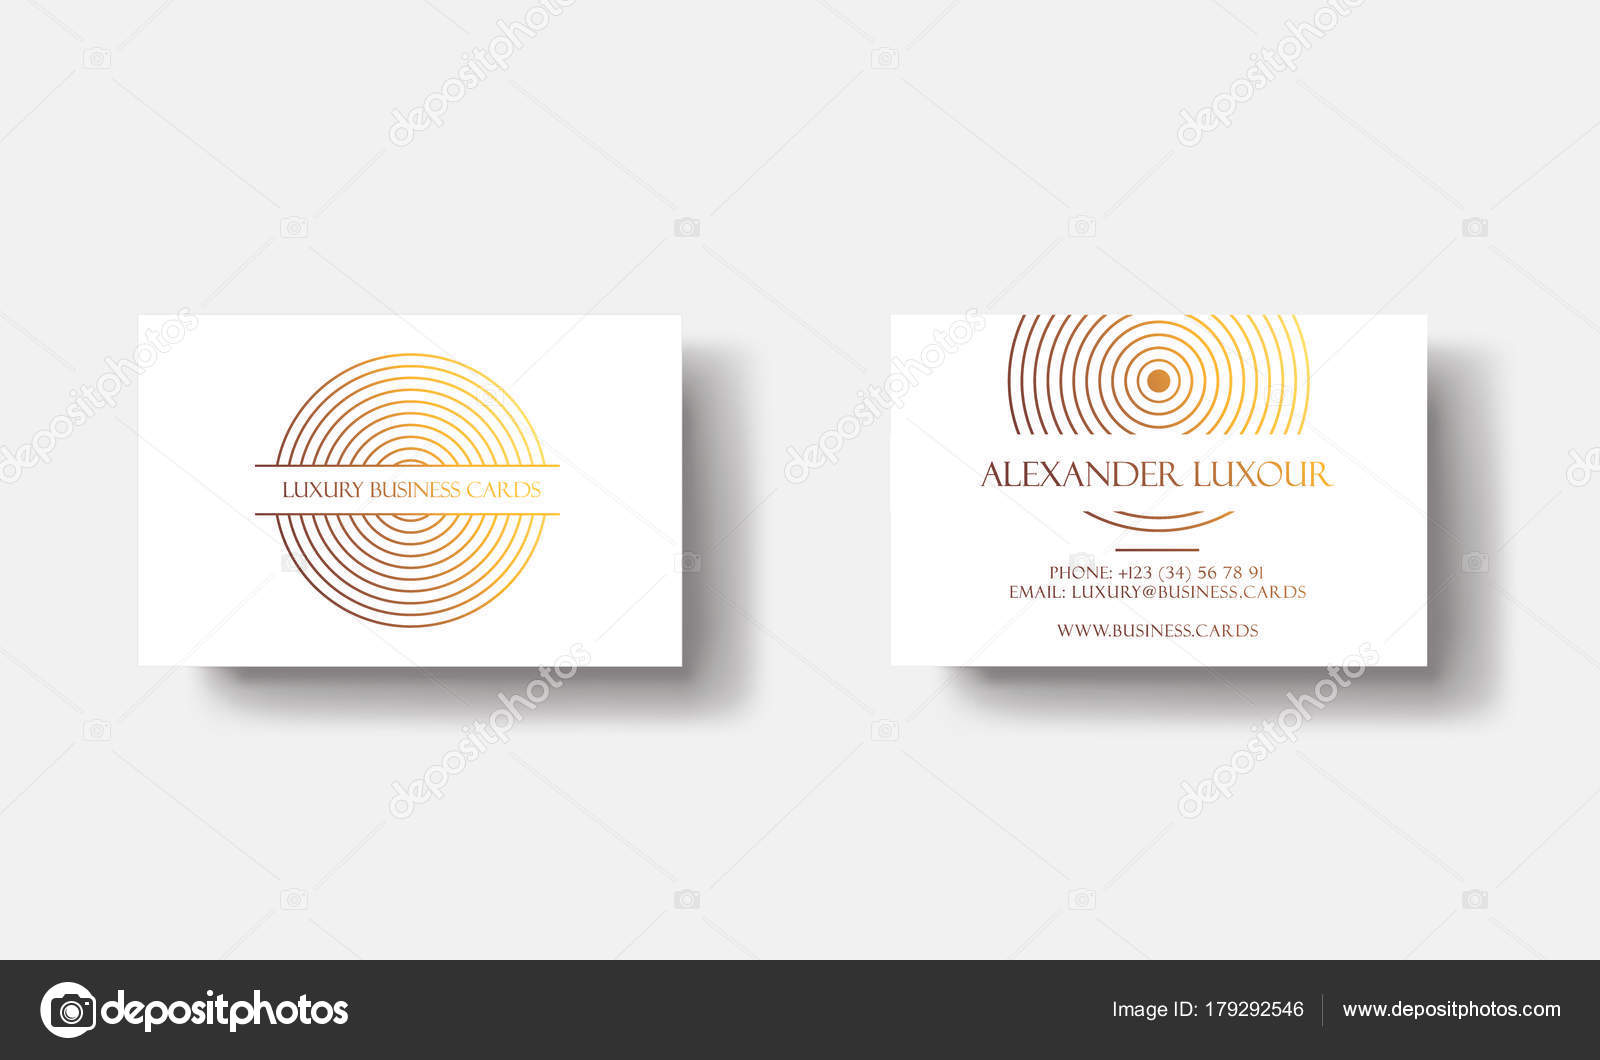 White Gold Luxury Business Cards For Vip Event Elegant Greeting